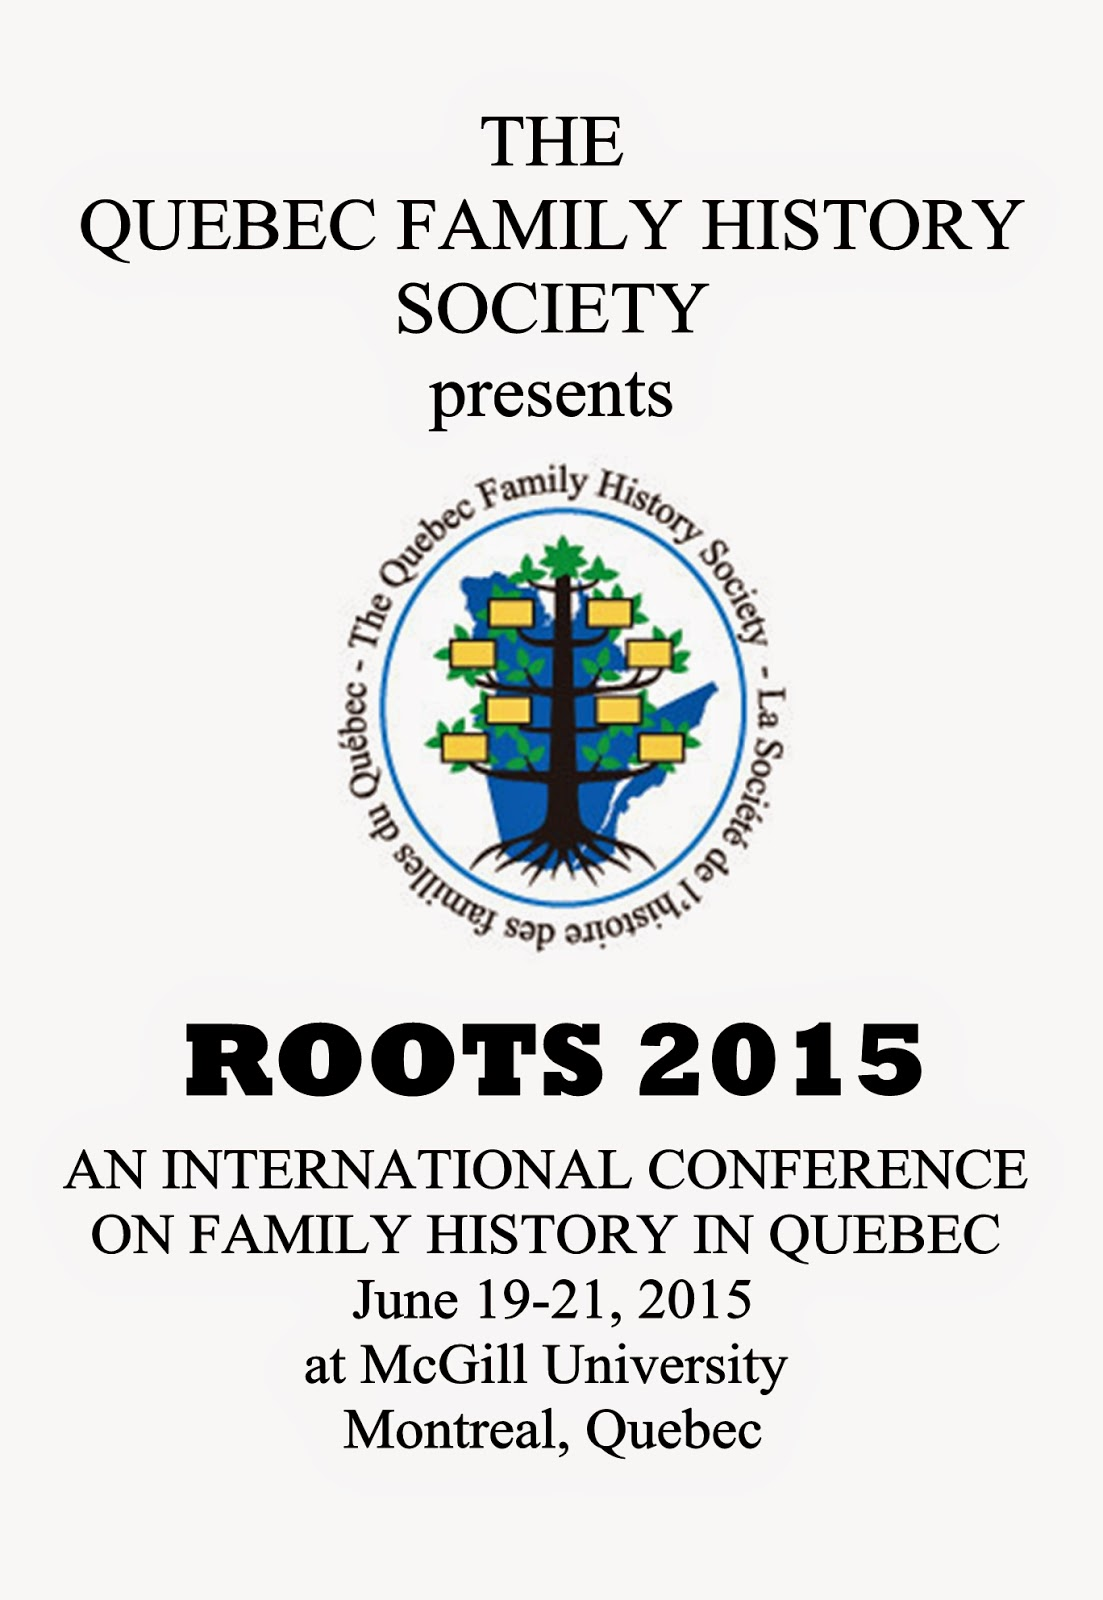 Quebec Family History presents Roots 2015 Conference